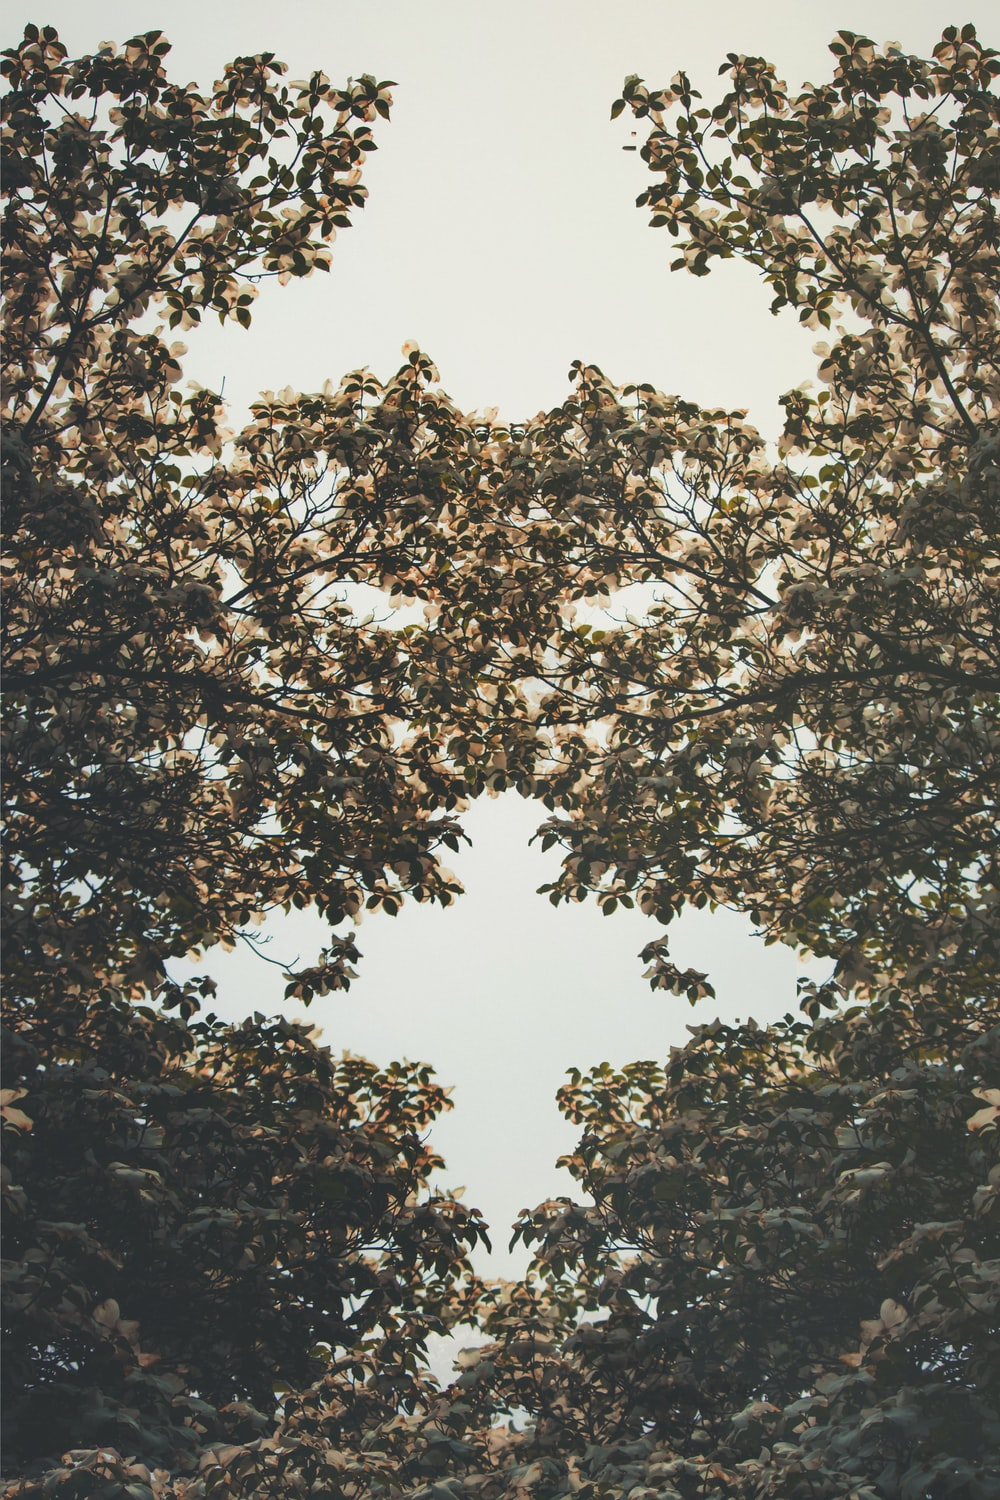 low angle photo of trees with blooming flowers